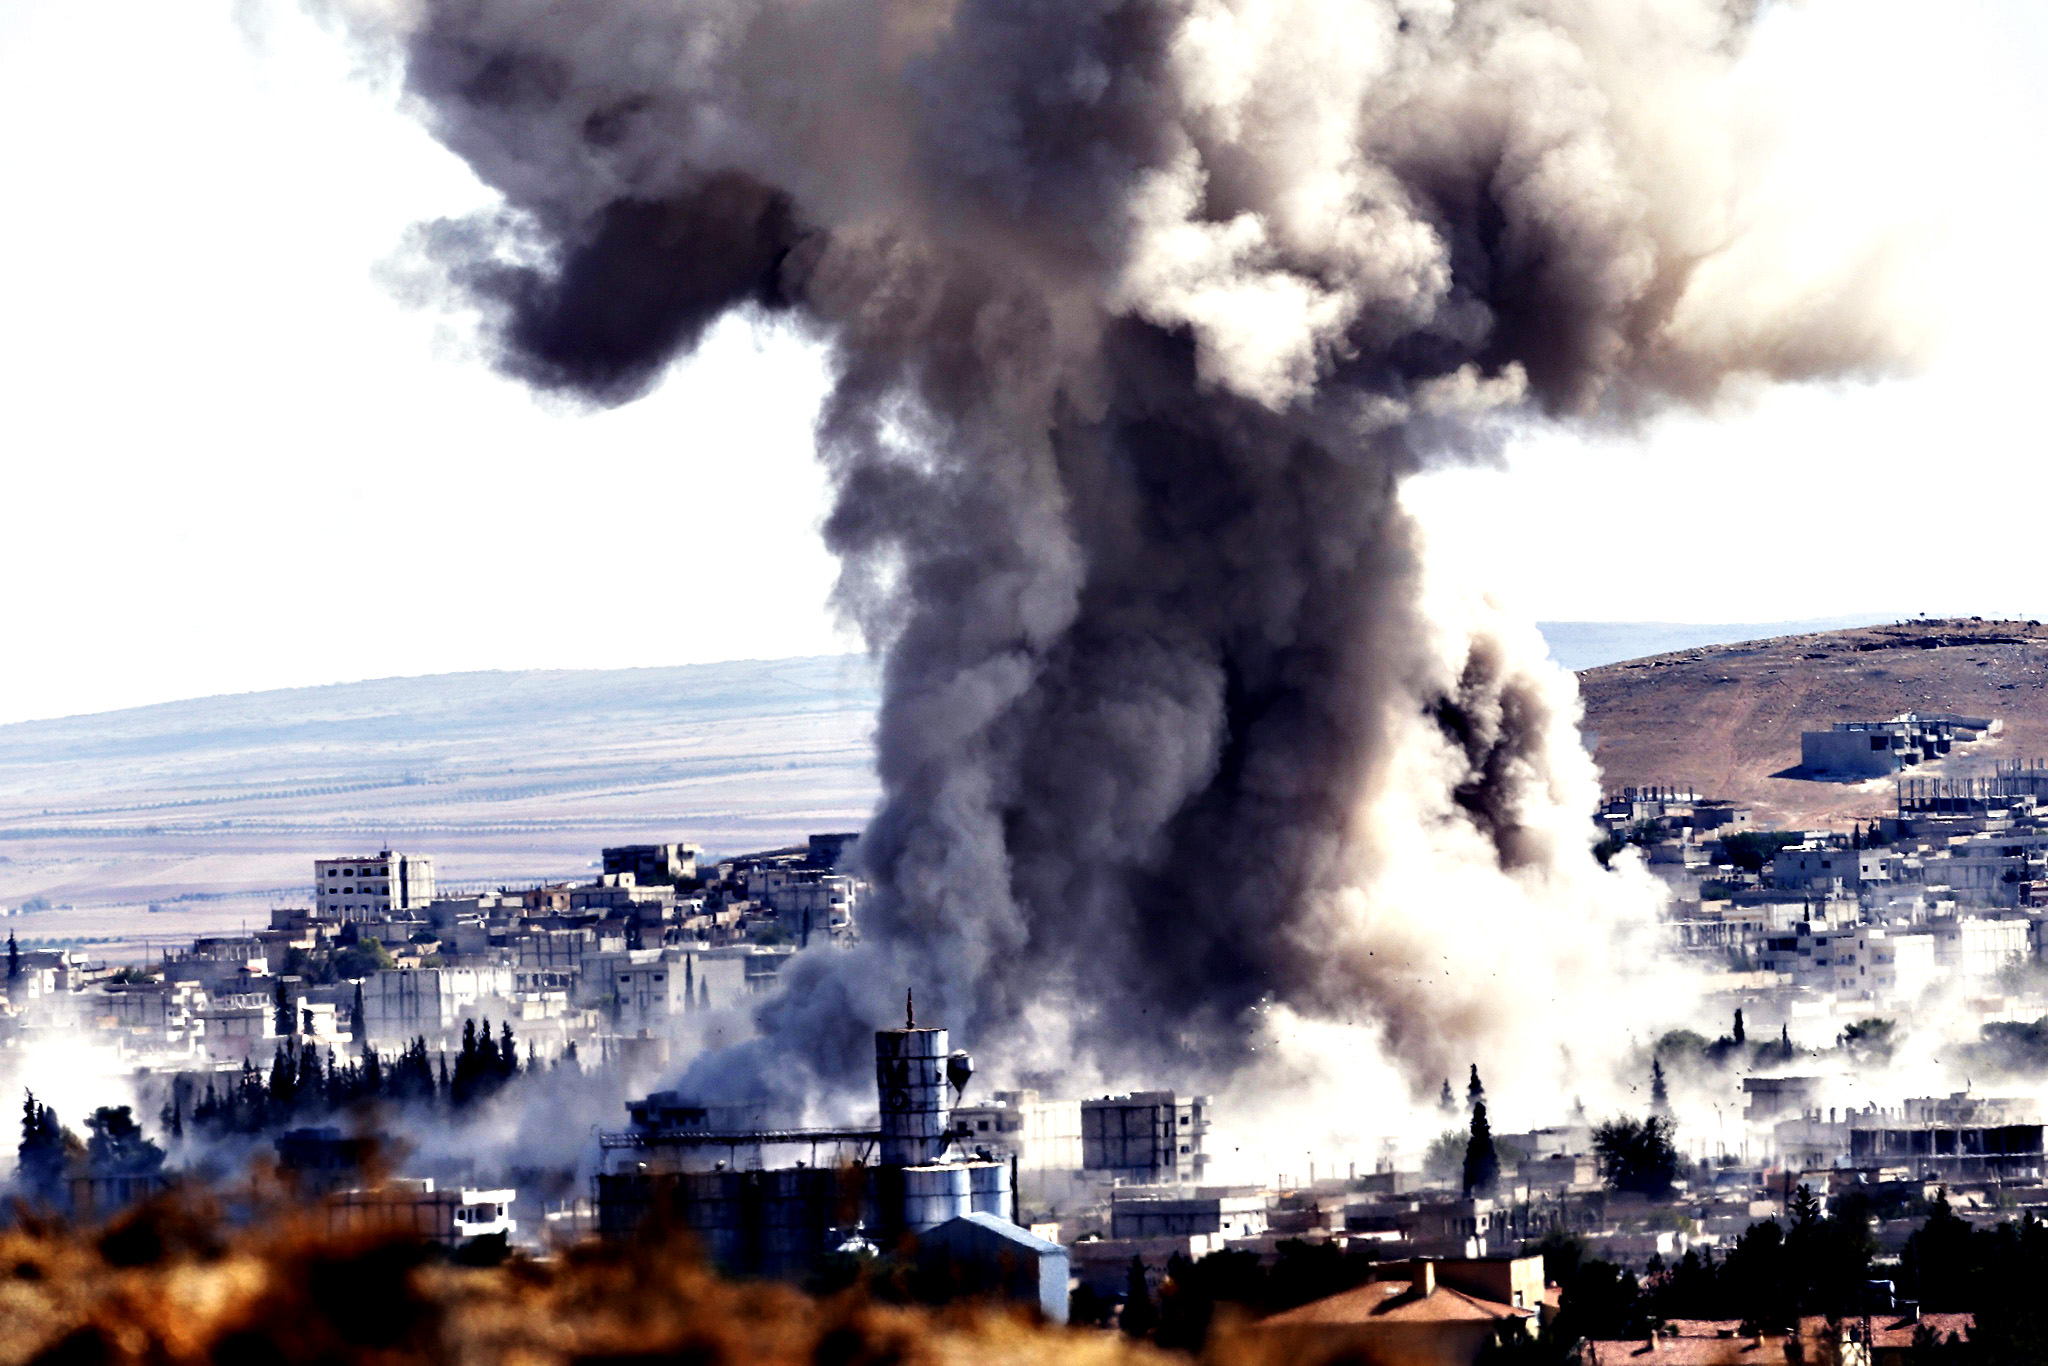 A picture taken from Turkey shows smoke rises after an airstrike by an allegeded alliance war plane on Islamic State targets in the west of Kobane, Syria, where Kurdish fighters YPG are trying to defend the city, near Suruc district, Sanliurfa, Turkey 08 October 2014.  Islamic State militants captured part of a strategic hill overlooking the southern entrance to the besieged Kurdish town of Kobane on Syria's border with Turkey, a monitoring group said. The Islamic State's reported advance came despite what appeared to be the most intense airstrikes yet on jihadist forces around the town by a US-led coalition that formed to fight the militants.